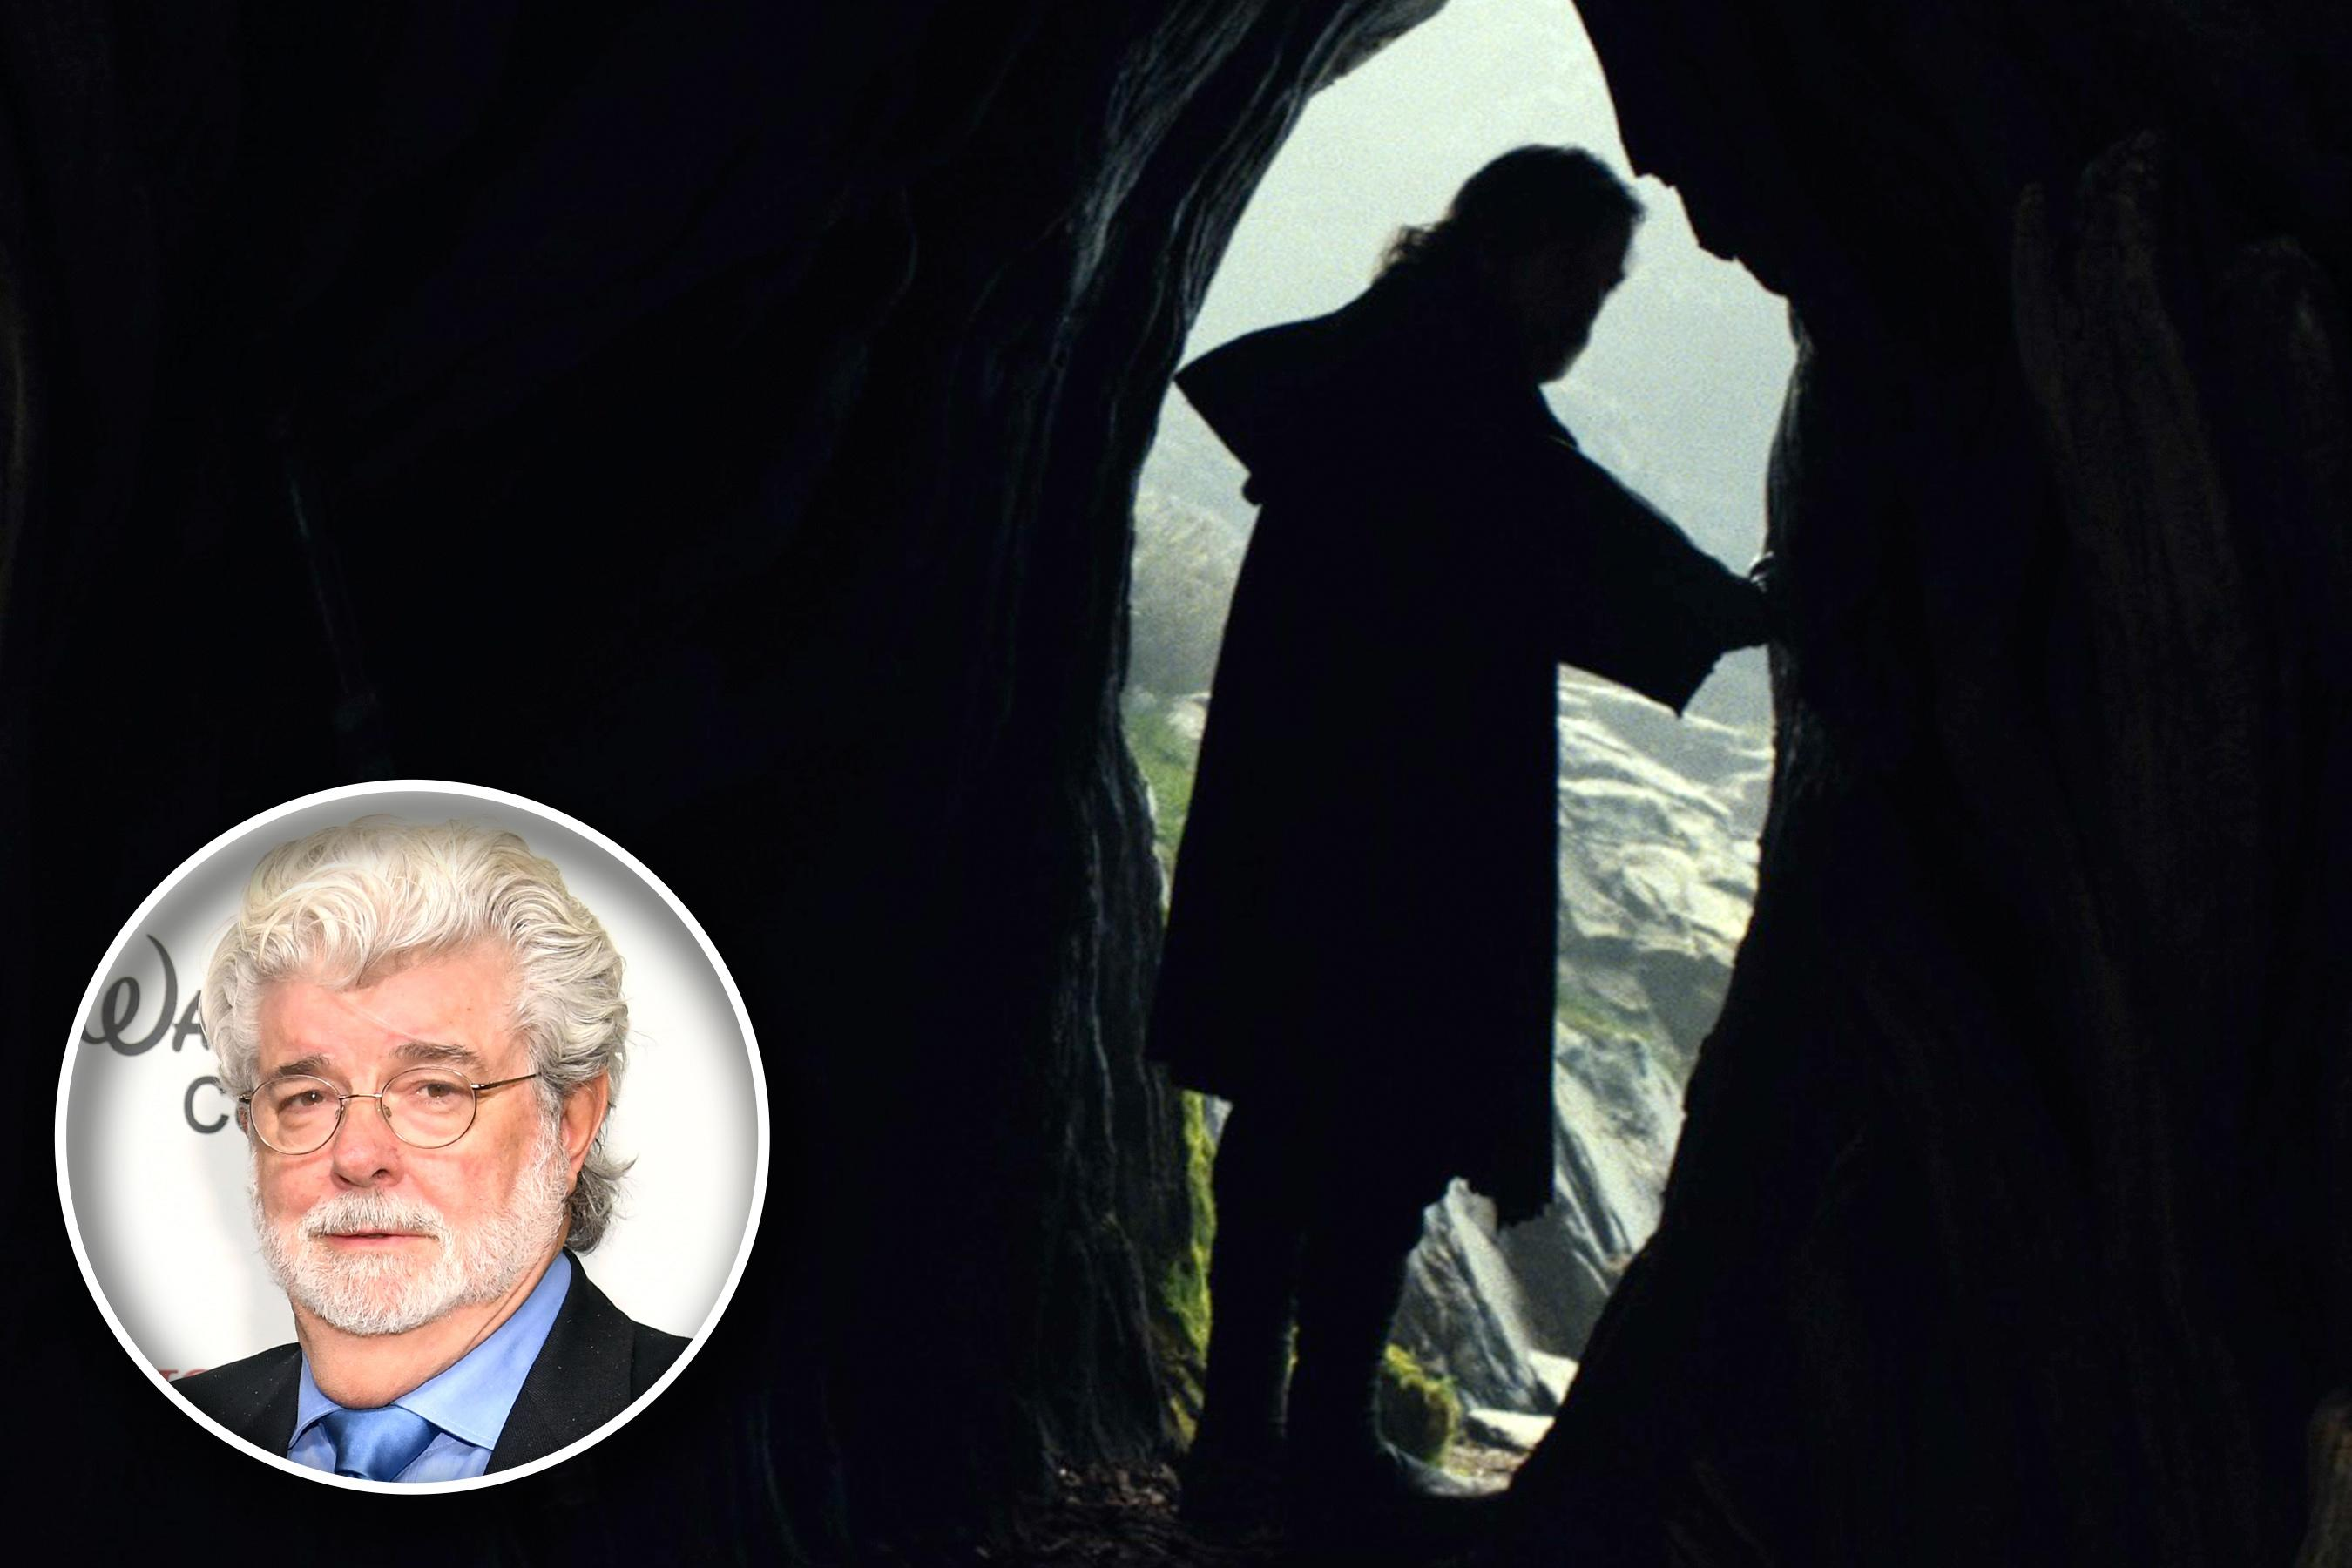 George Lucas still offers the Star Wars films suggestions on the Jedi